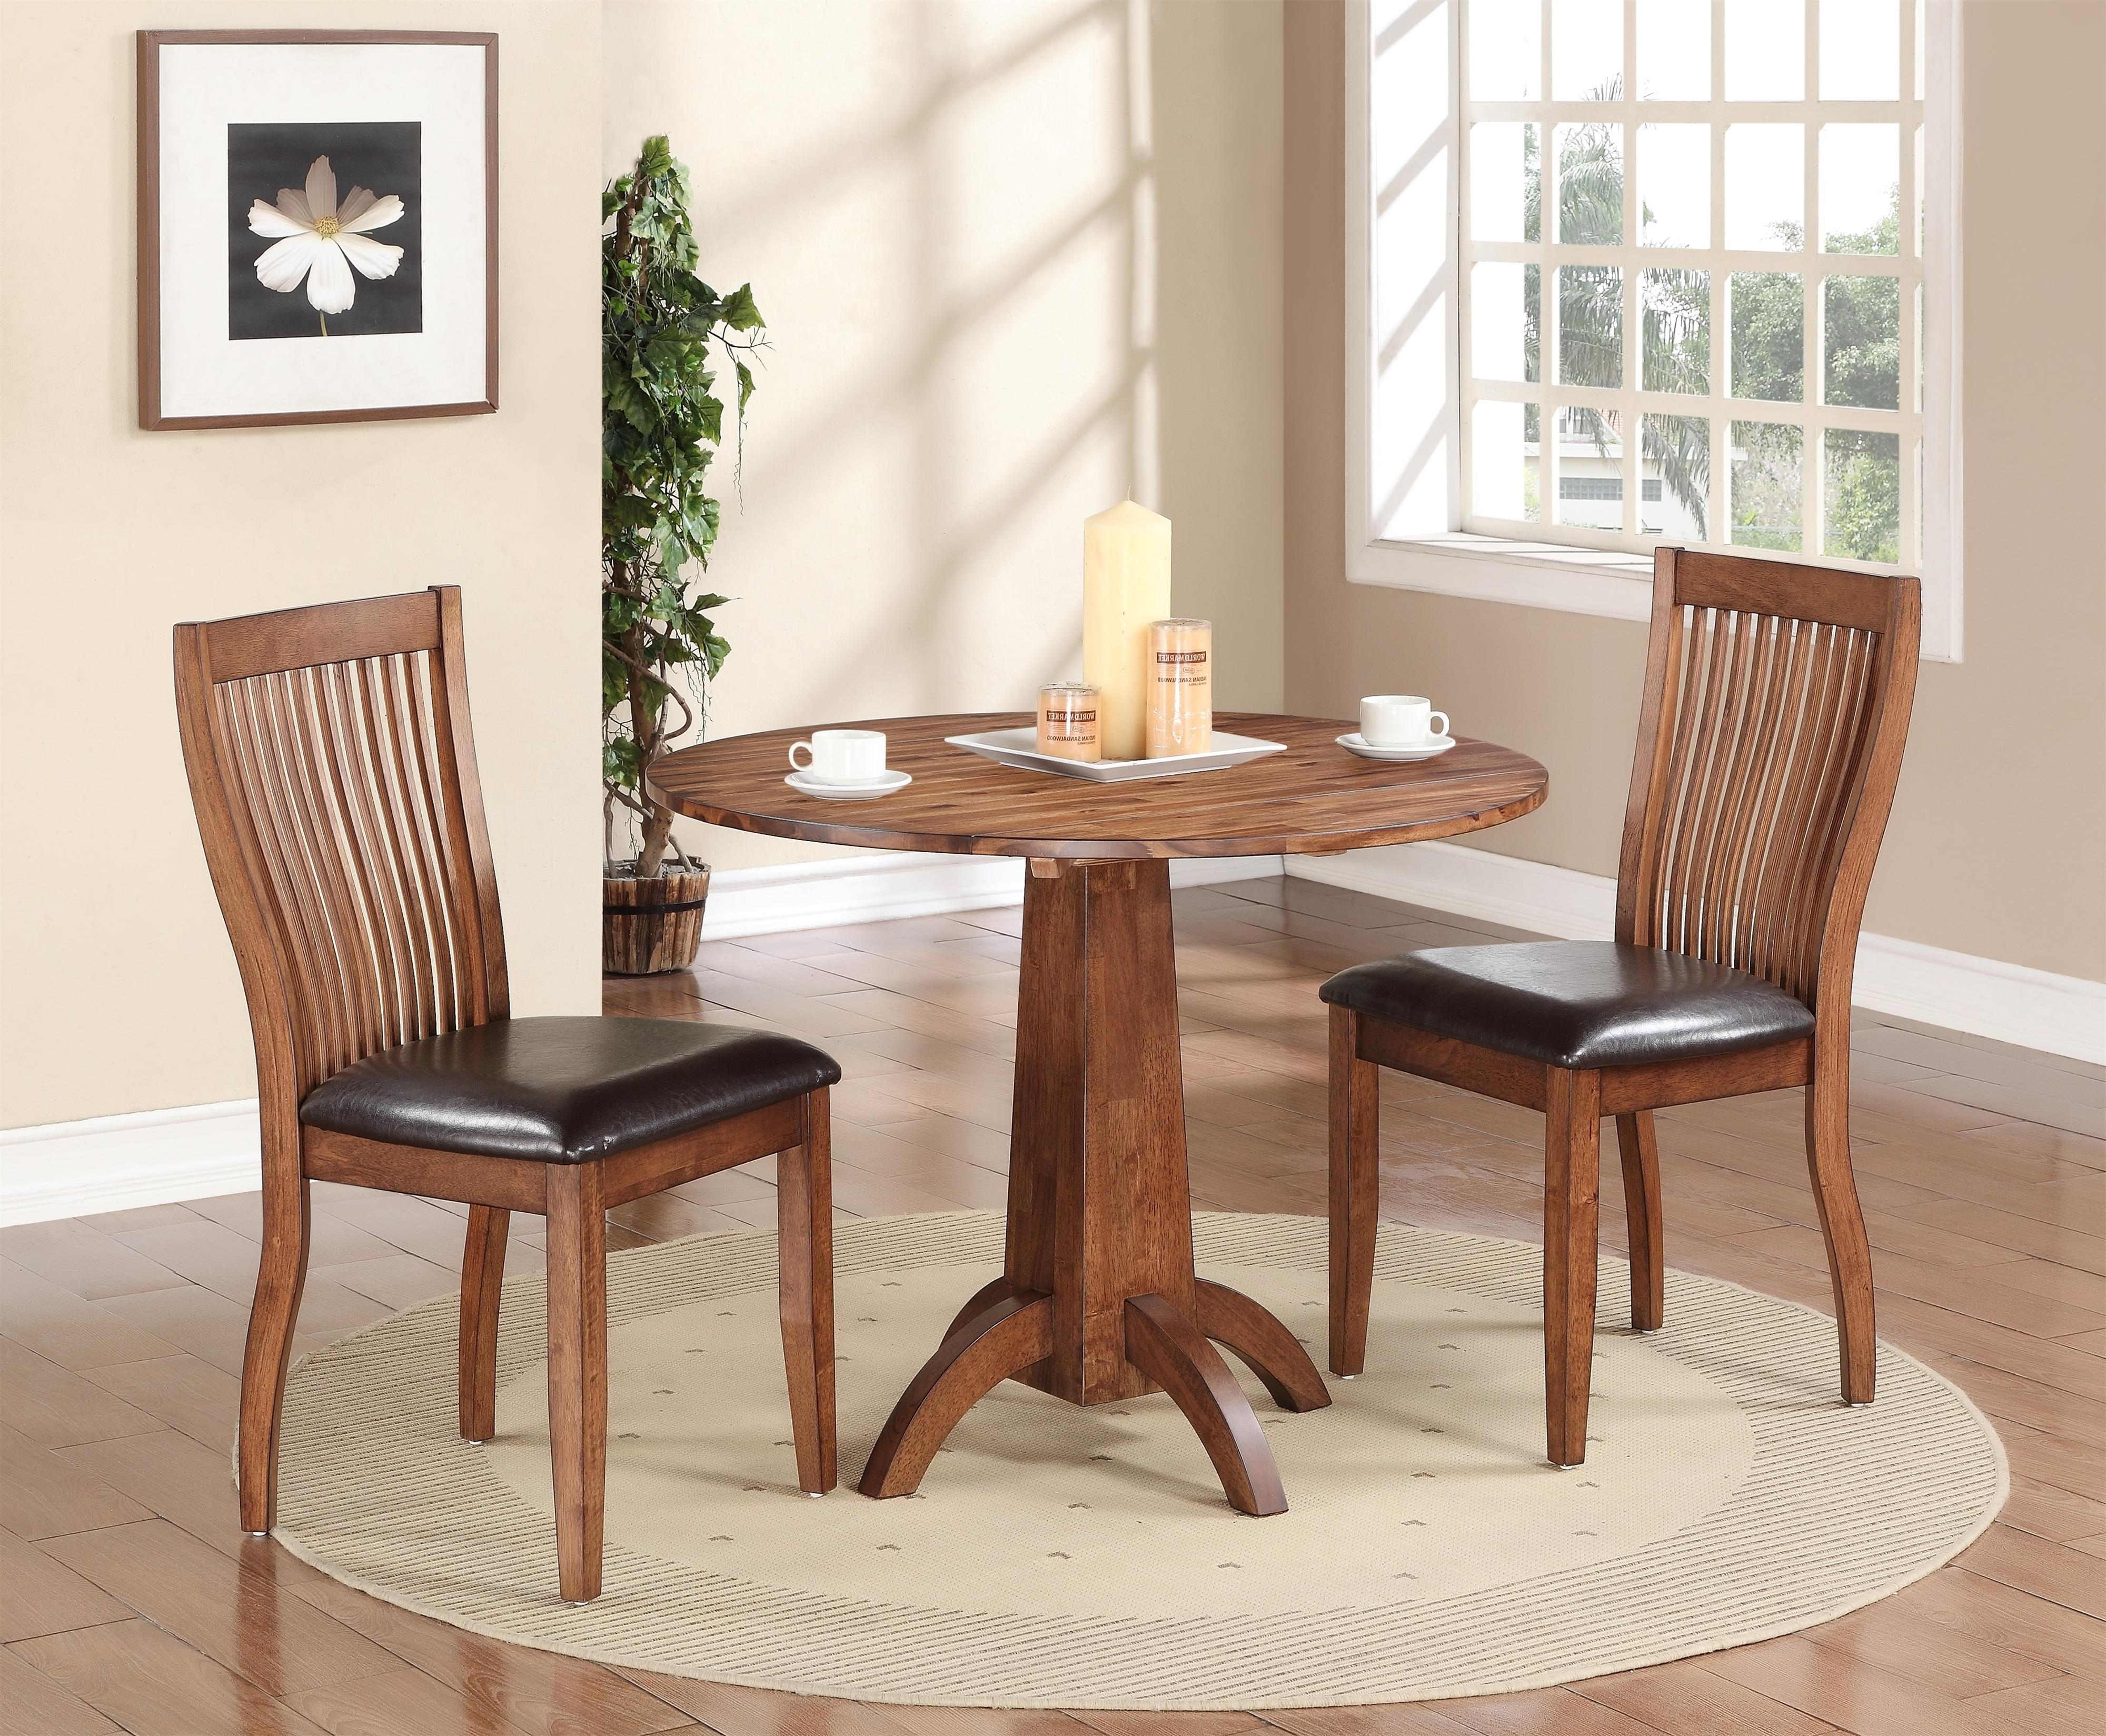 Favorite Dining Room Chairs Only With Regard To Winners Only Broadway 3 Piece Dining Set With Slat Back Chairs (View 22 of 25)